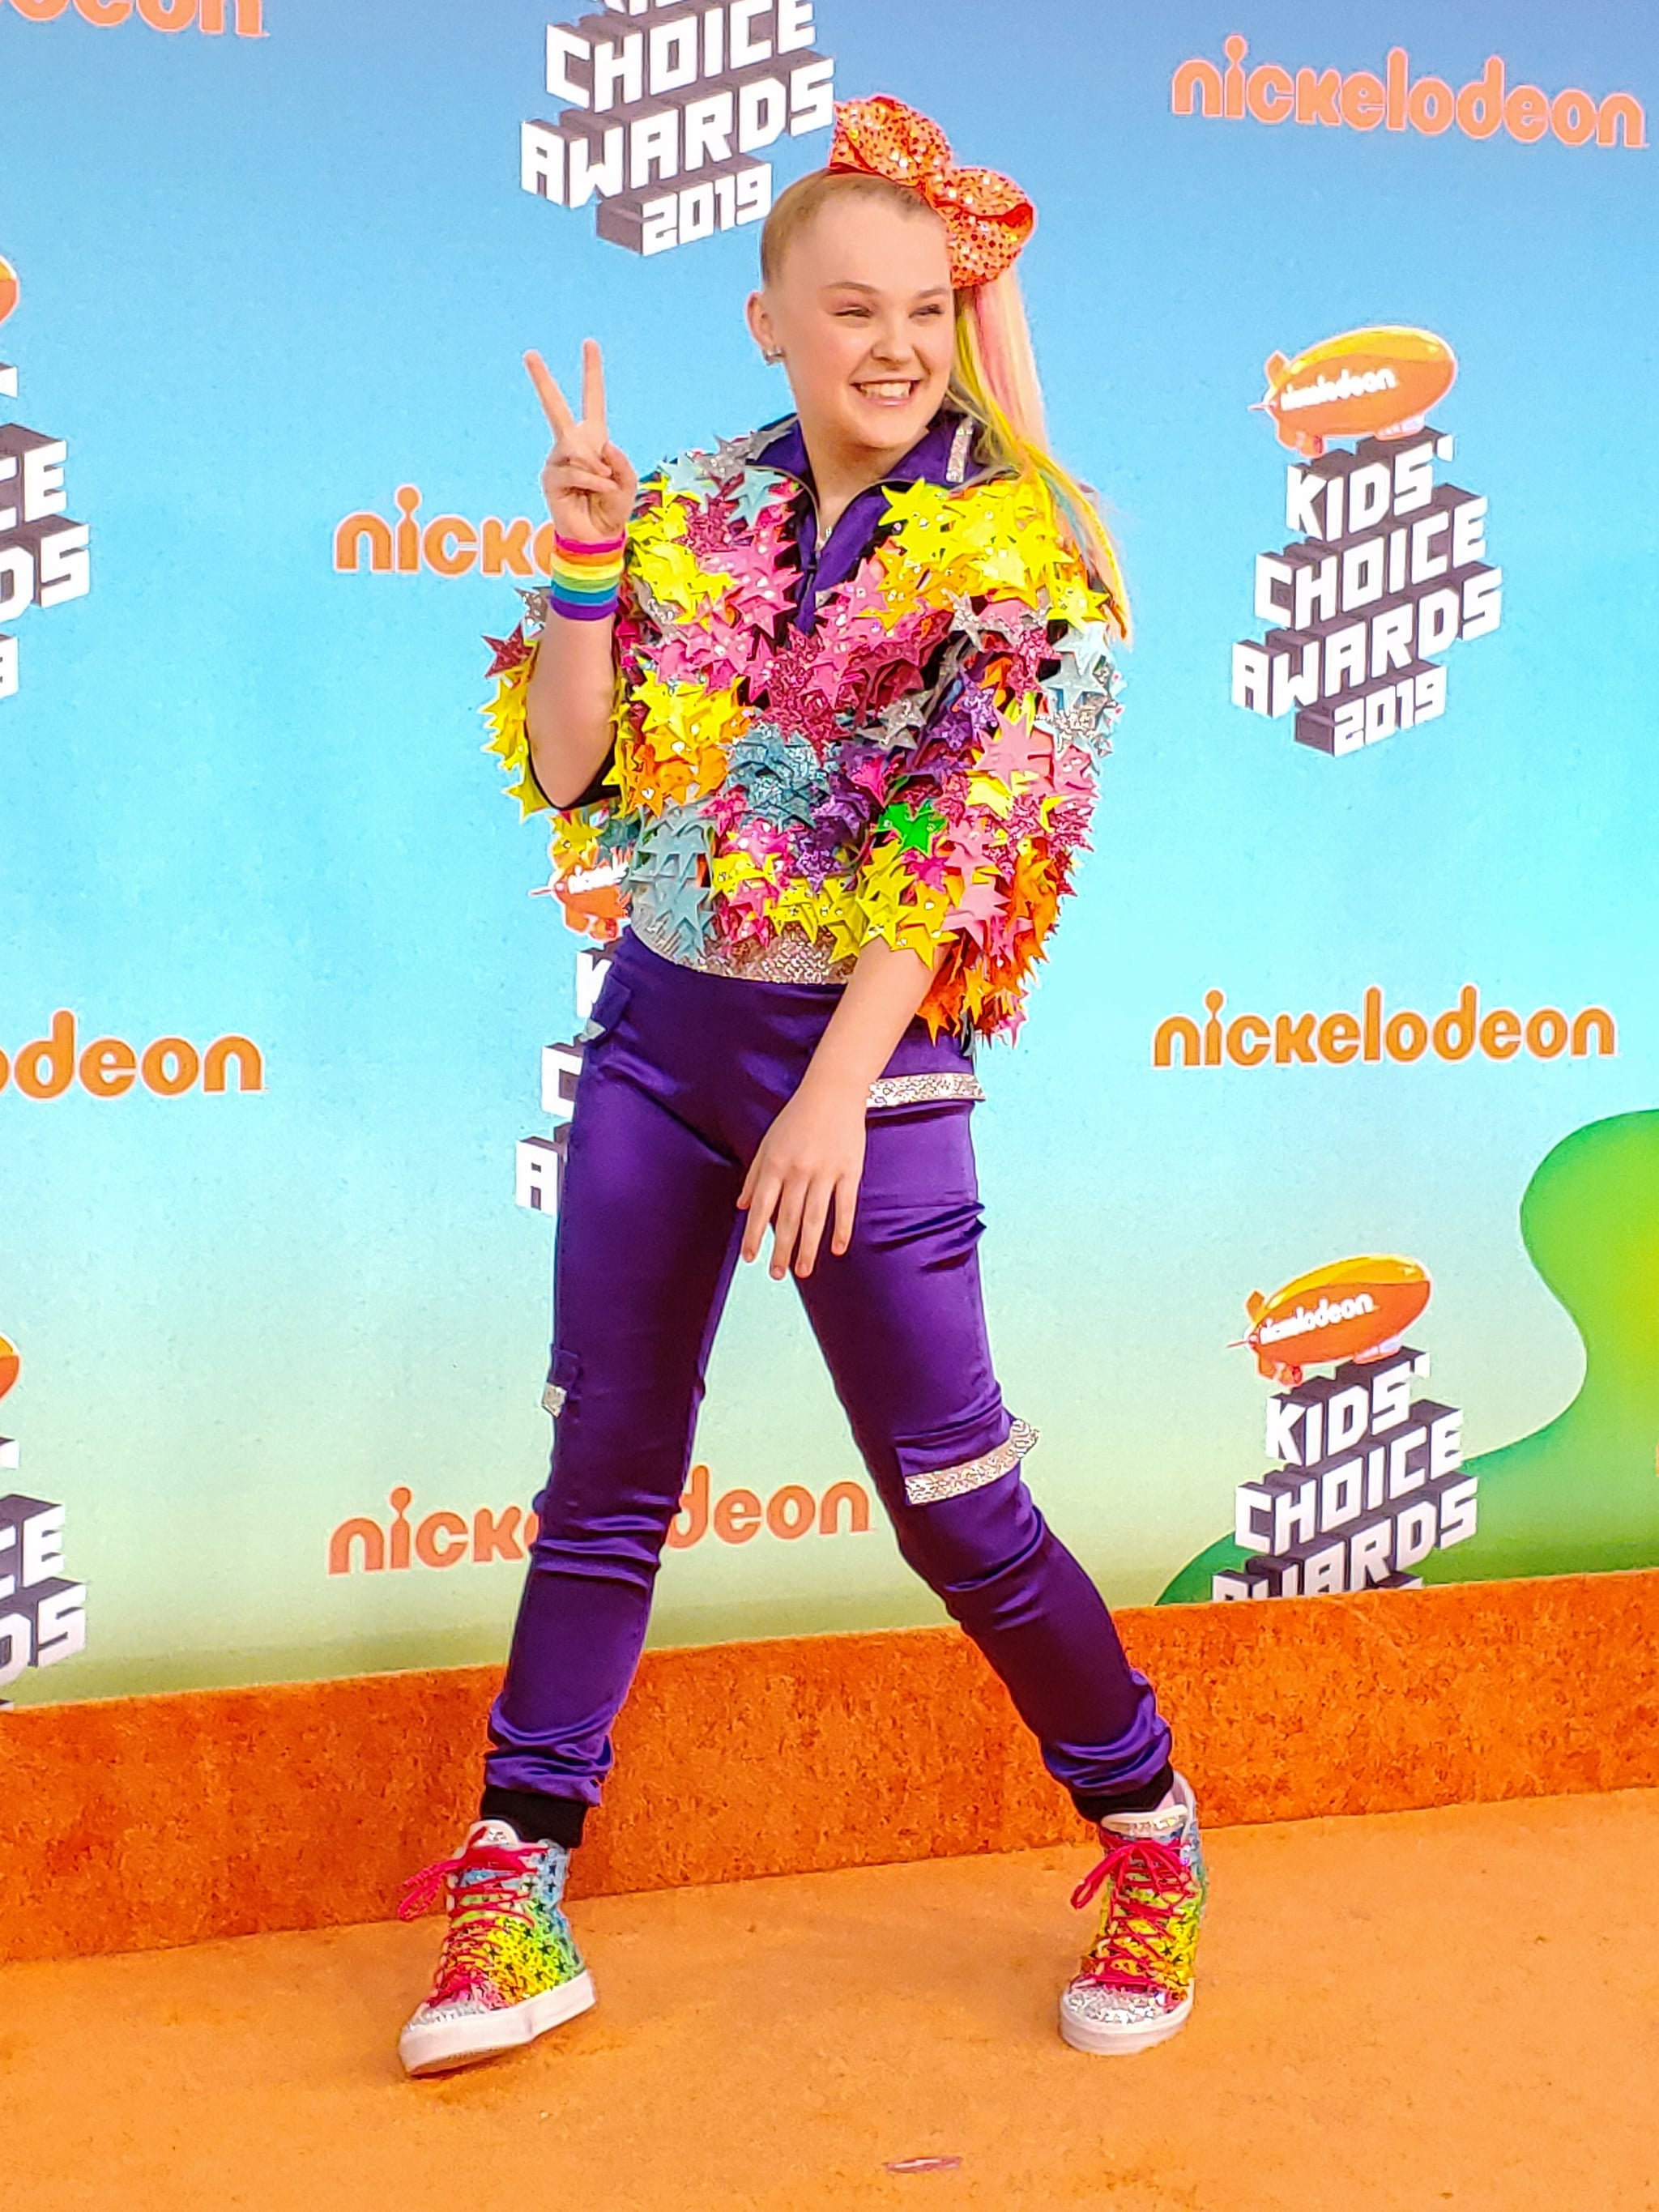 LOS ANGELES, CALIFORNIA - MARCH 23: (Image was captured on the LG V40 ThinQ) JoJo Siwa attends Nickelodeon's 2019 Kids' Choice Awards  at Galen Centre on March 23, 2019 in Los Angeles, California. (Photo by Presley Ann/FilmMagic)